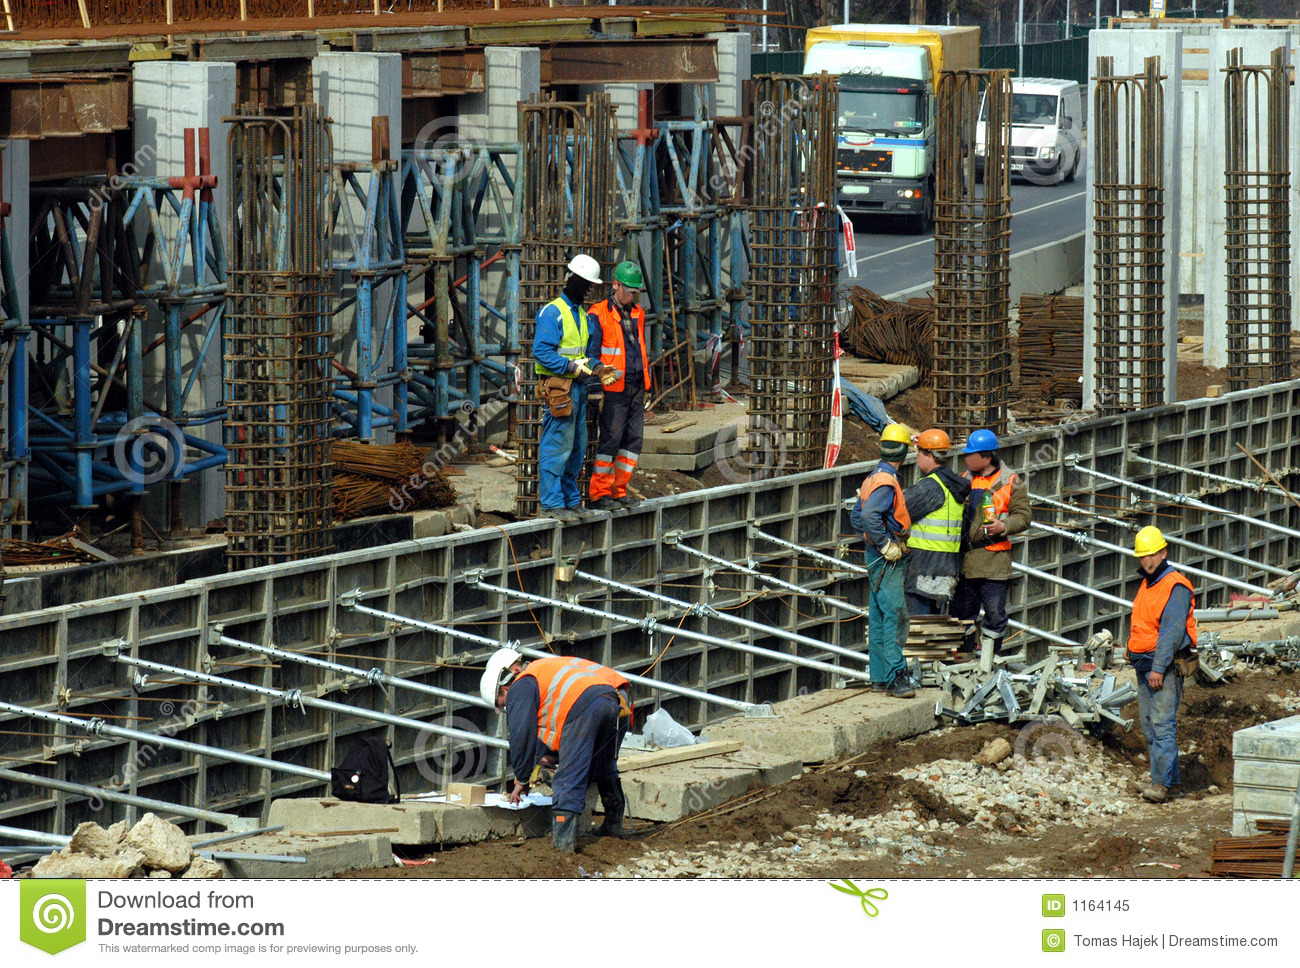 Royalty Free Stock Photo: On construction site: www.dreamstime.com/royalty-free-stock-photo-construction-site...